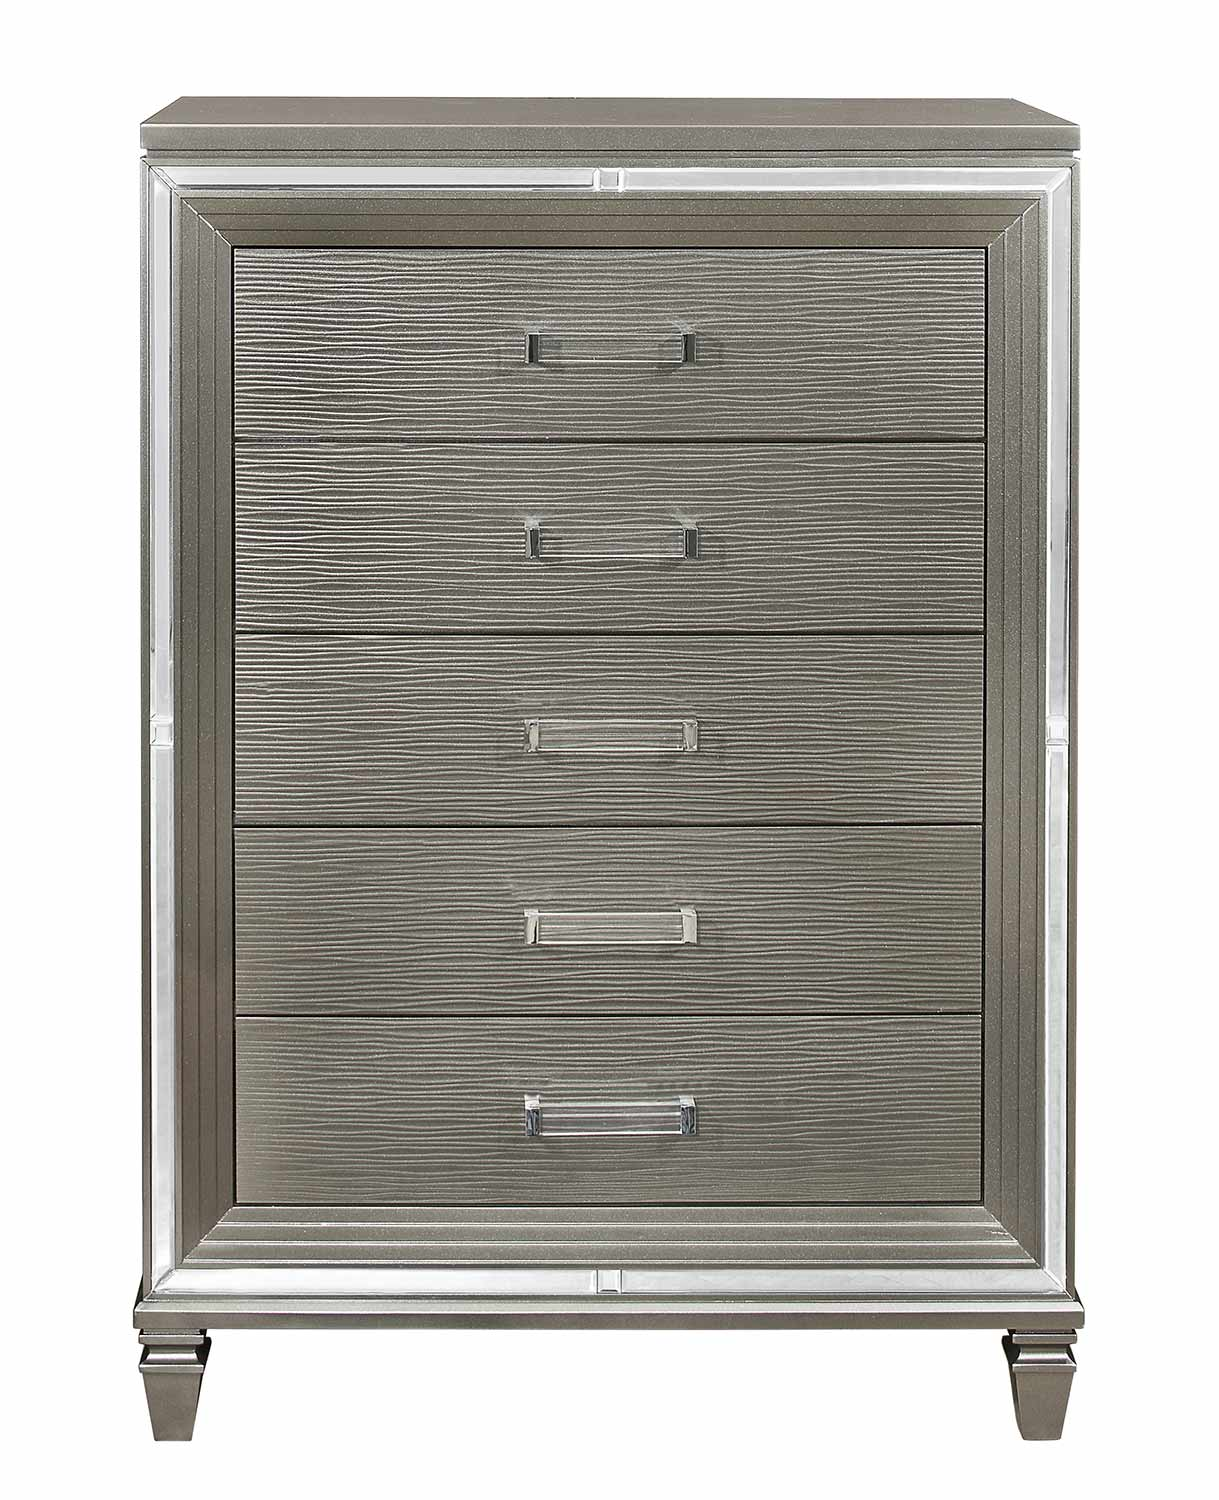 Homelegance Tamsin Chest - Silver-Gray Metallic